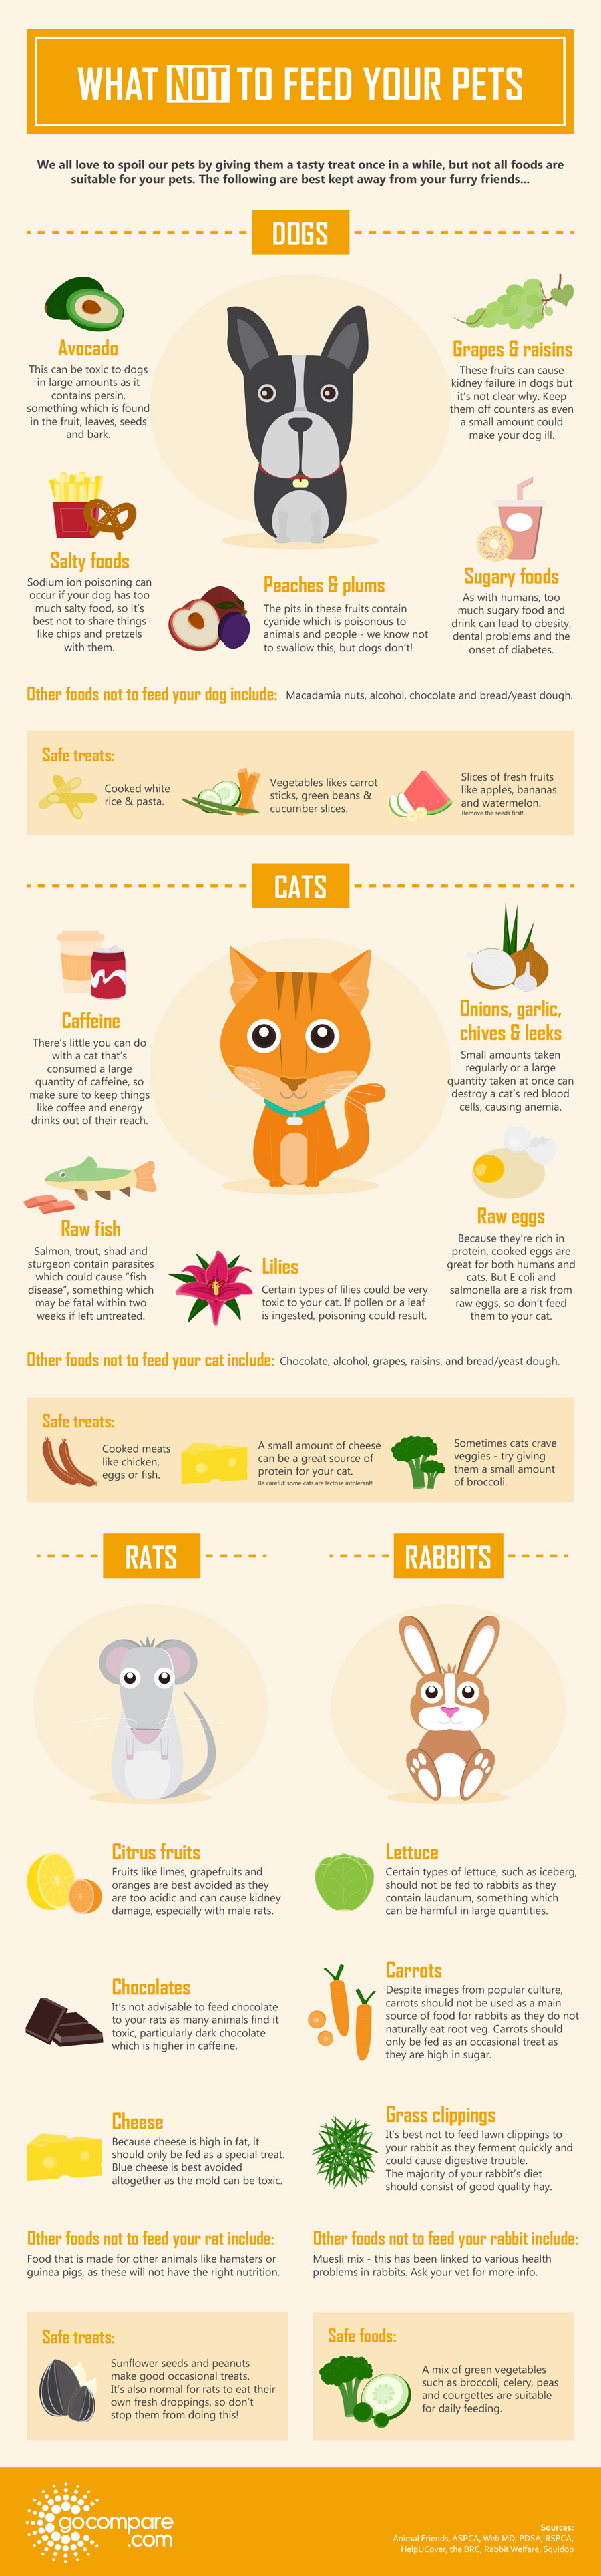 What not to feed your dog info graphic